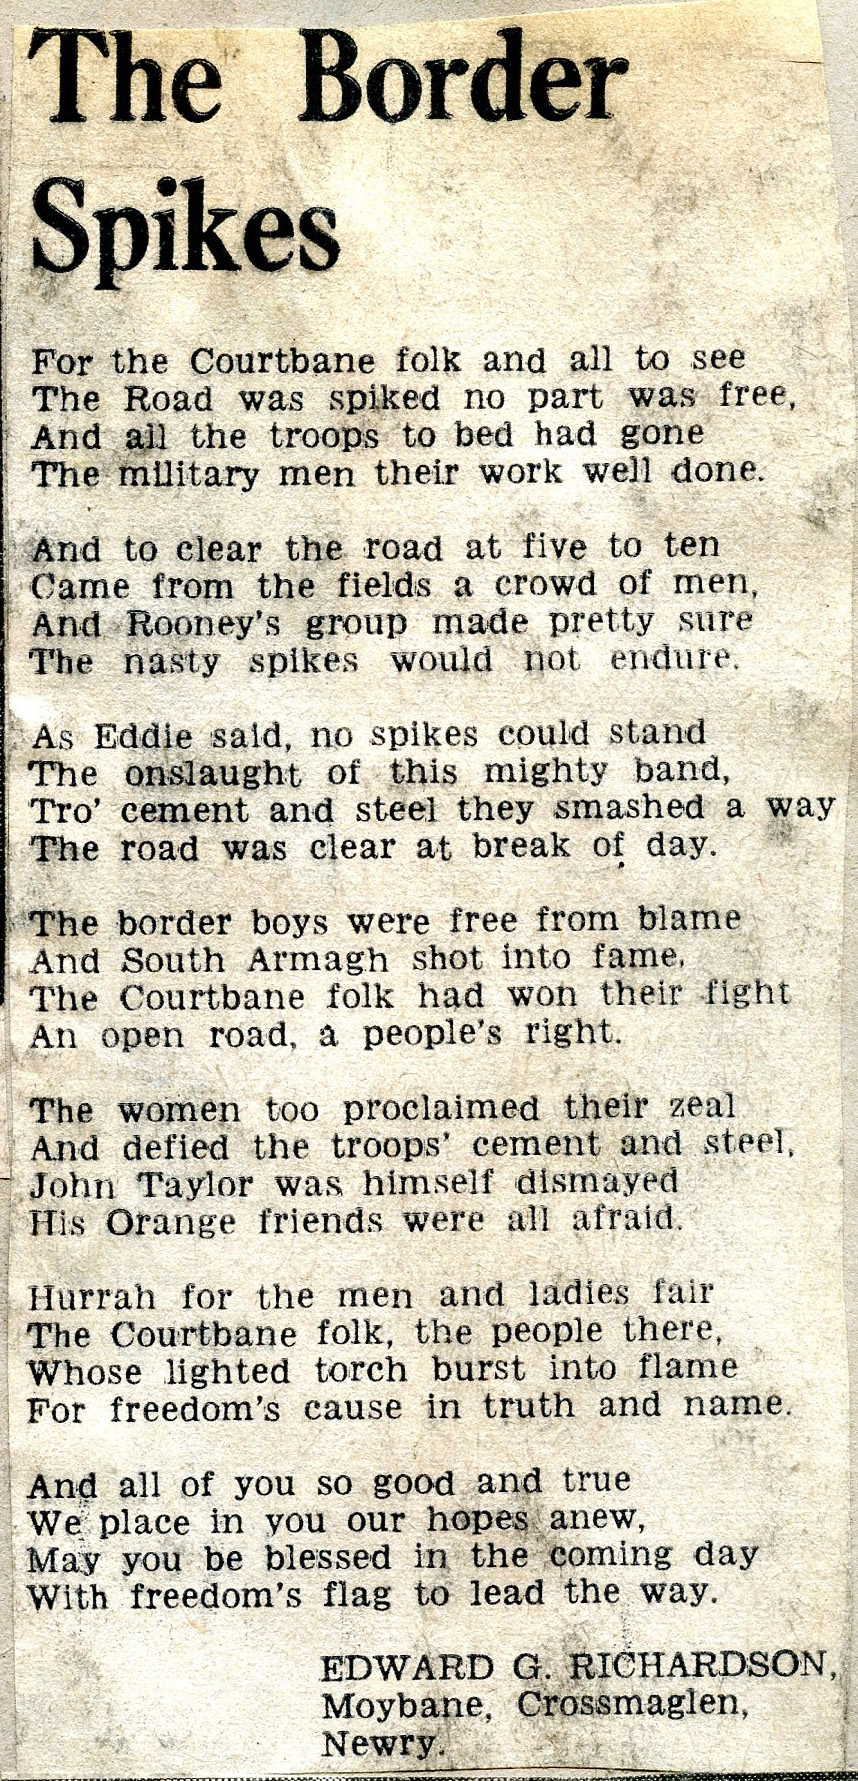 A poem by Edward G. Richardson called The Border Spikes.